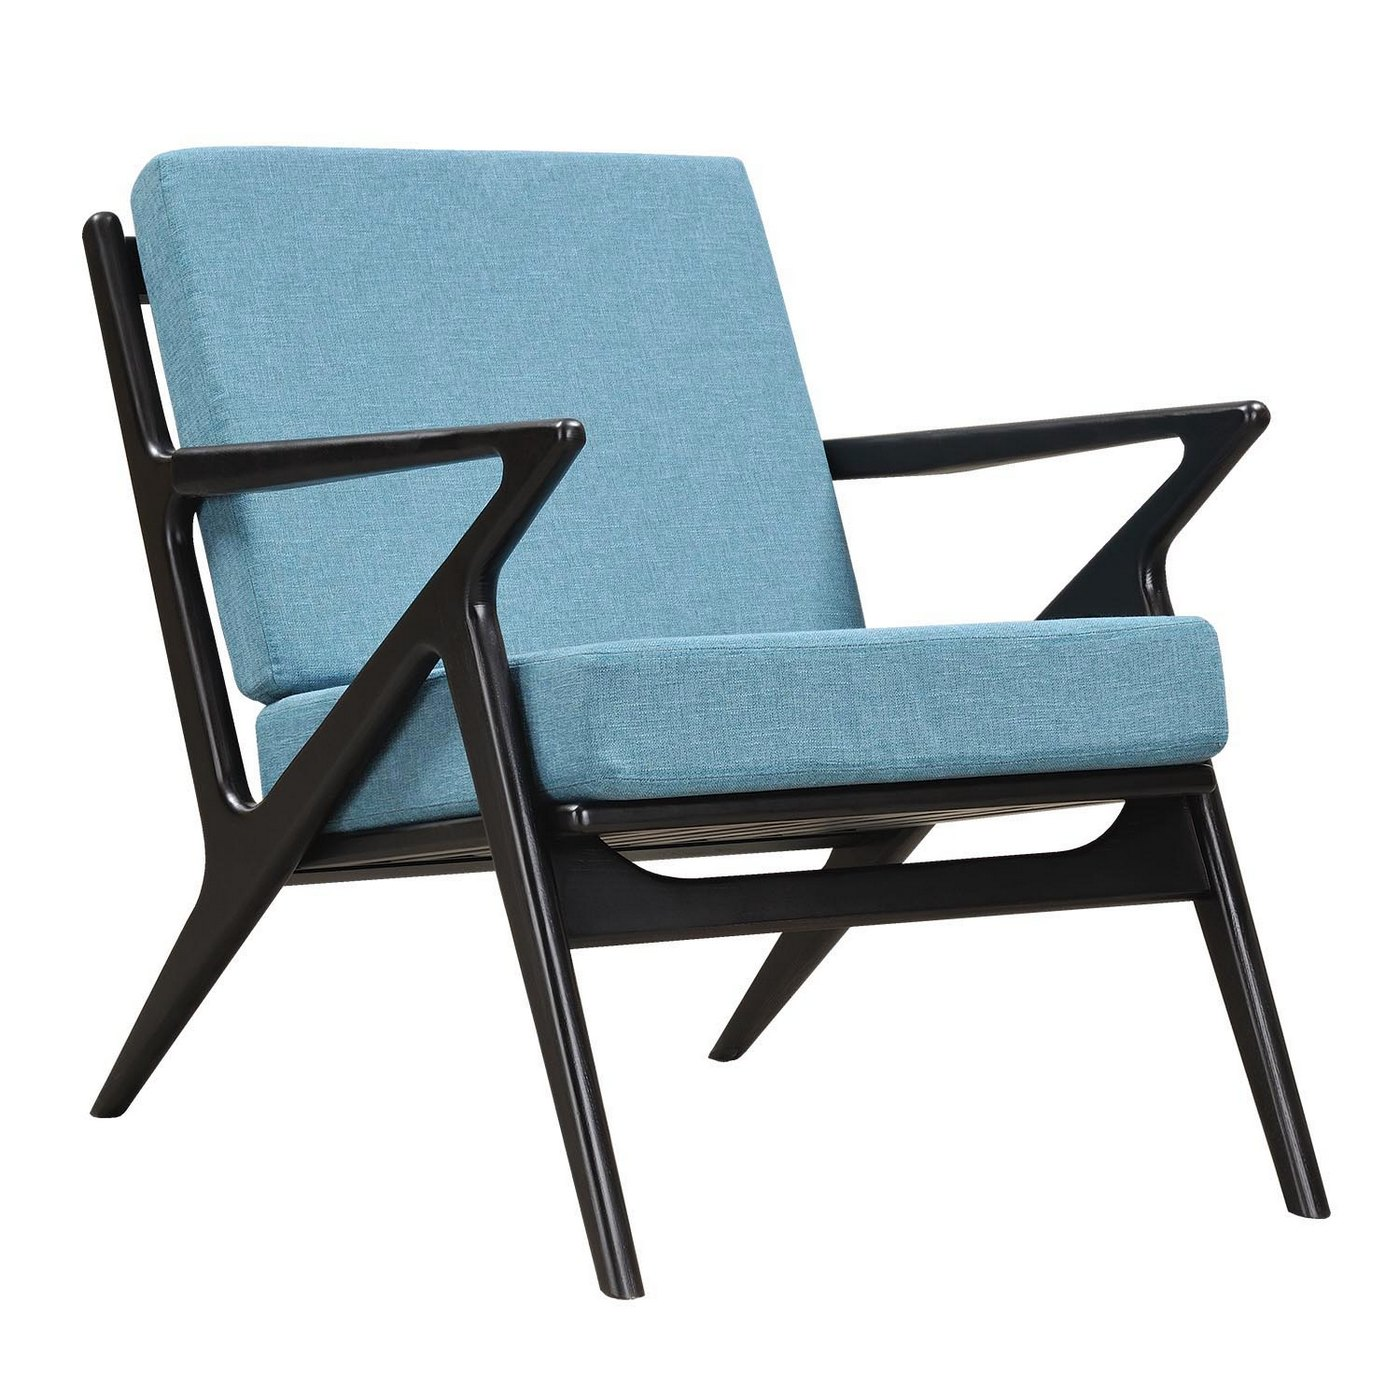 modern blue chair round table 6 chairs set zain mid century fabric with wooden